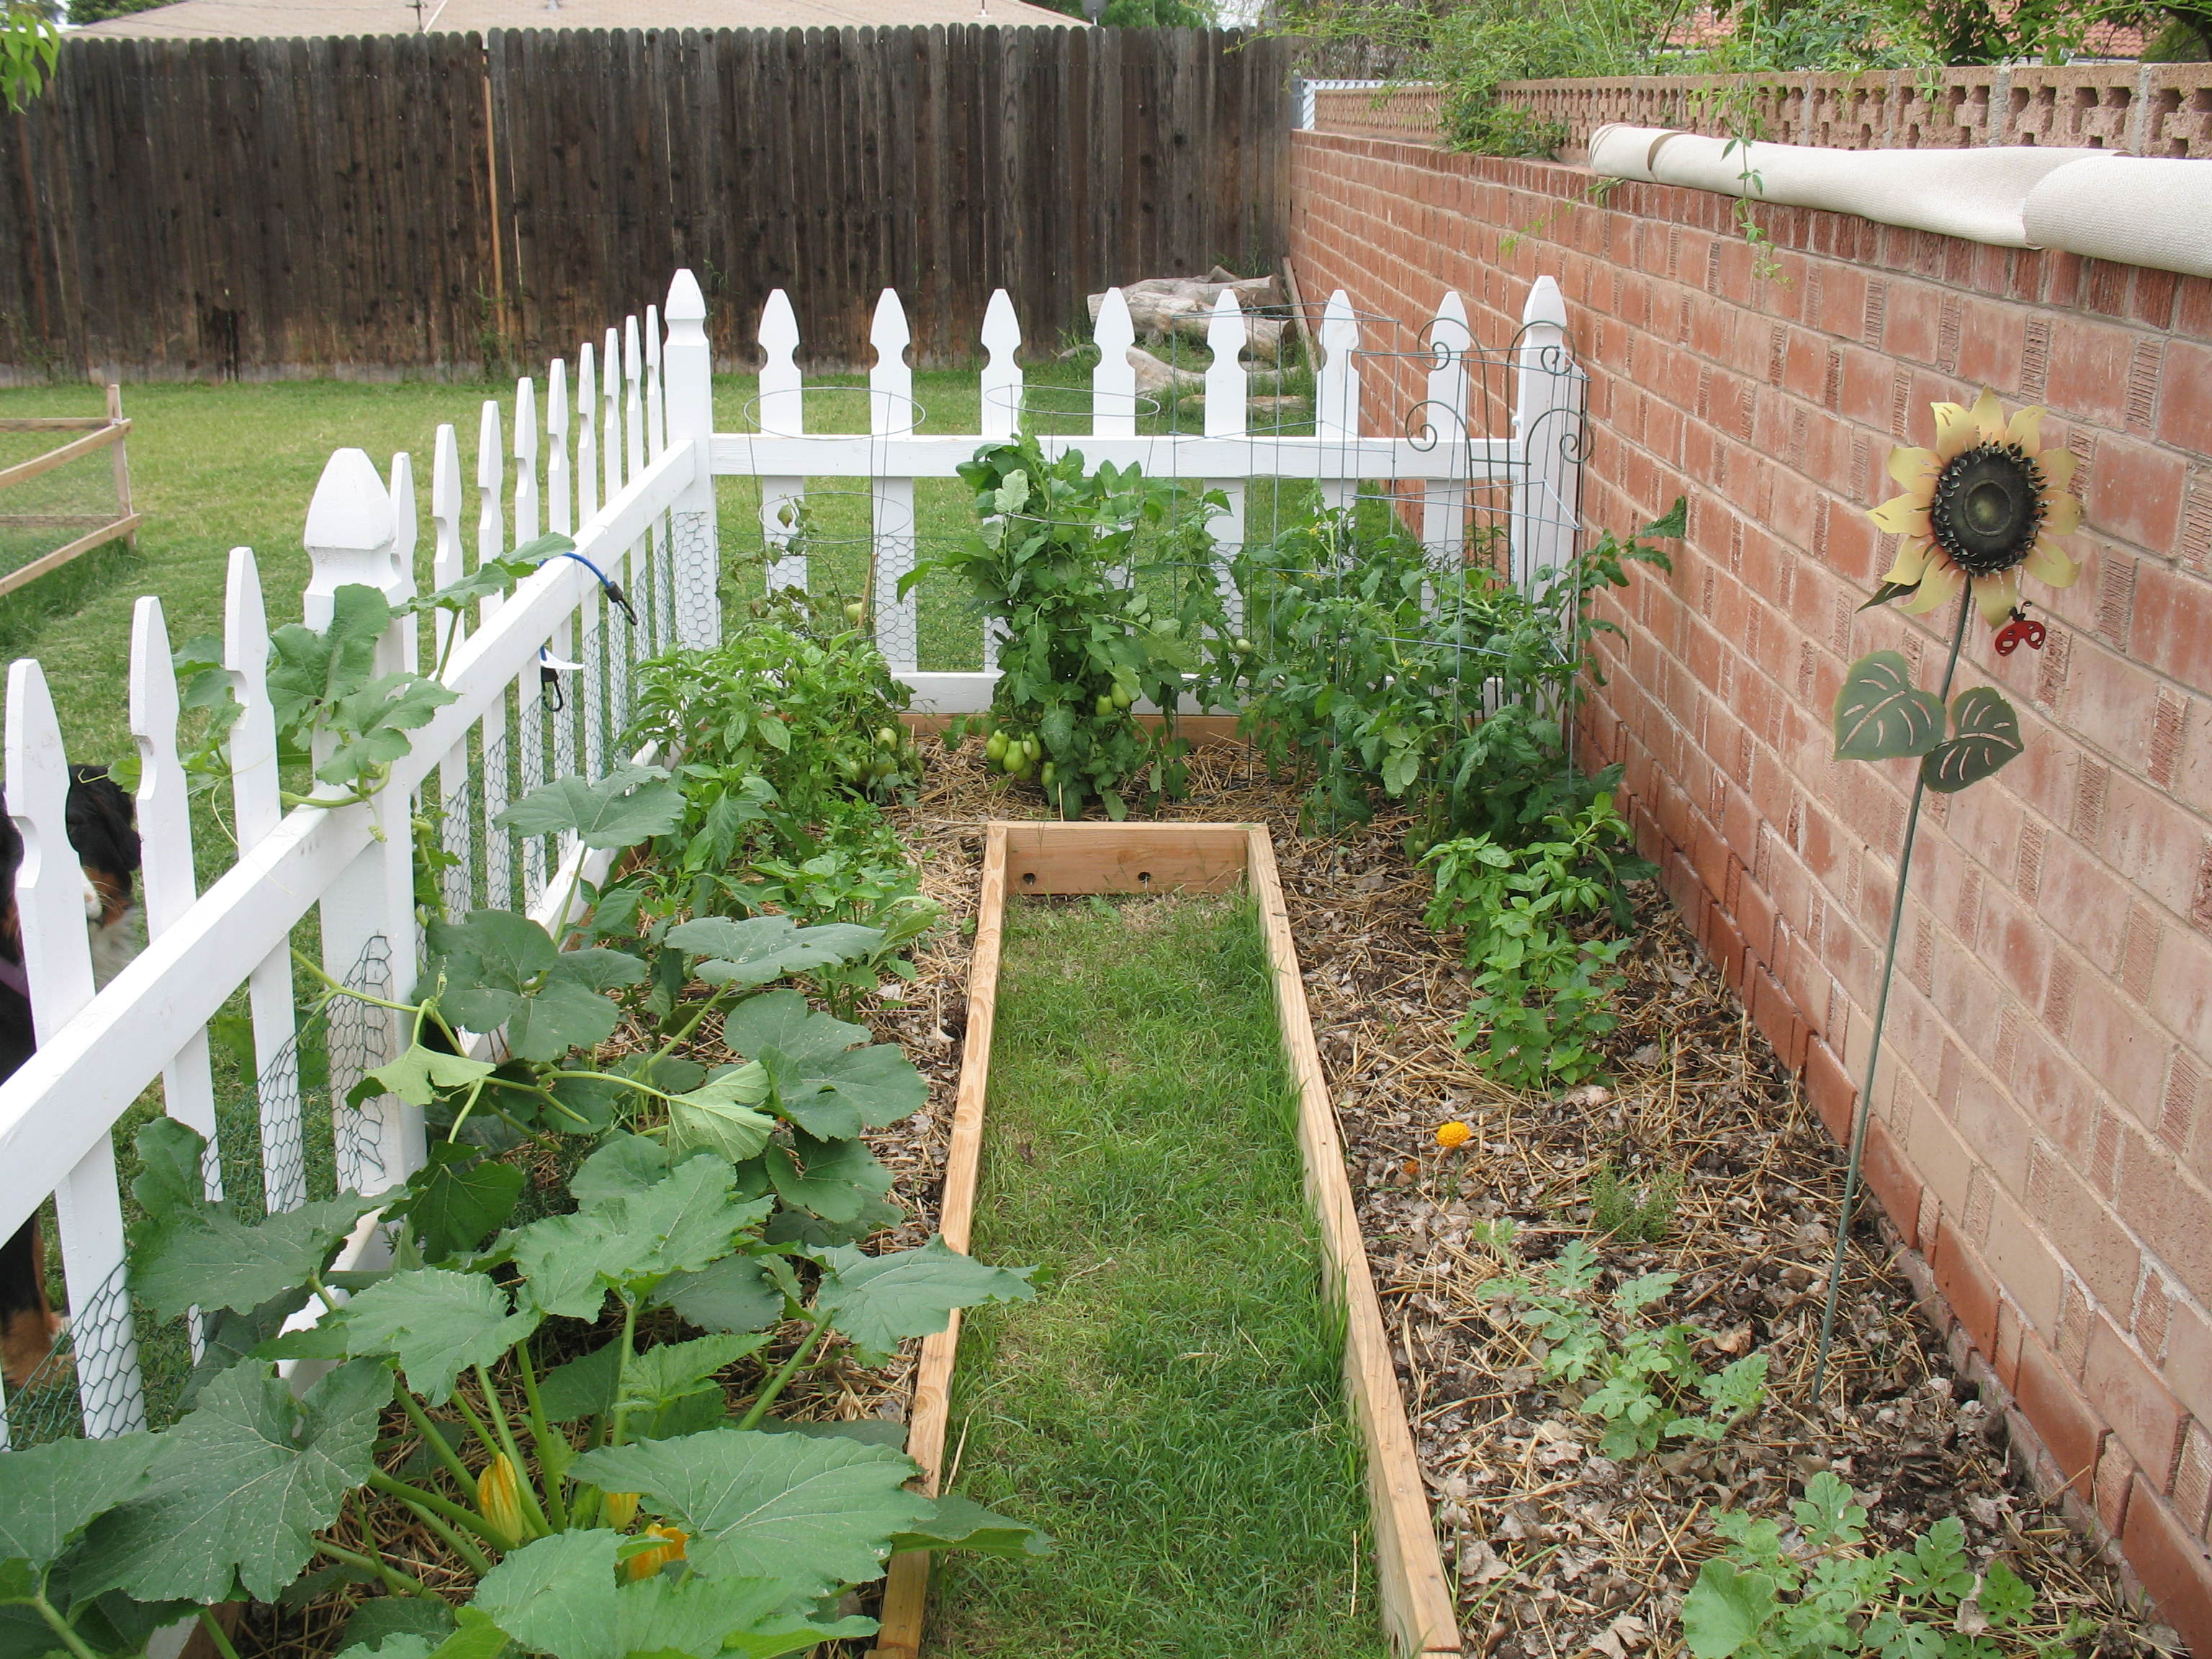 Arizonans Look To Save On Their Food Budget By Starting Backyard Gardens